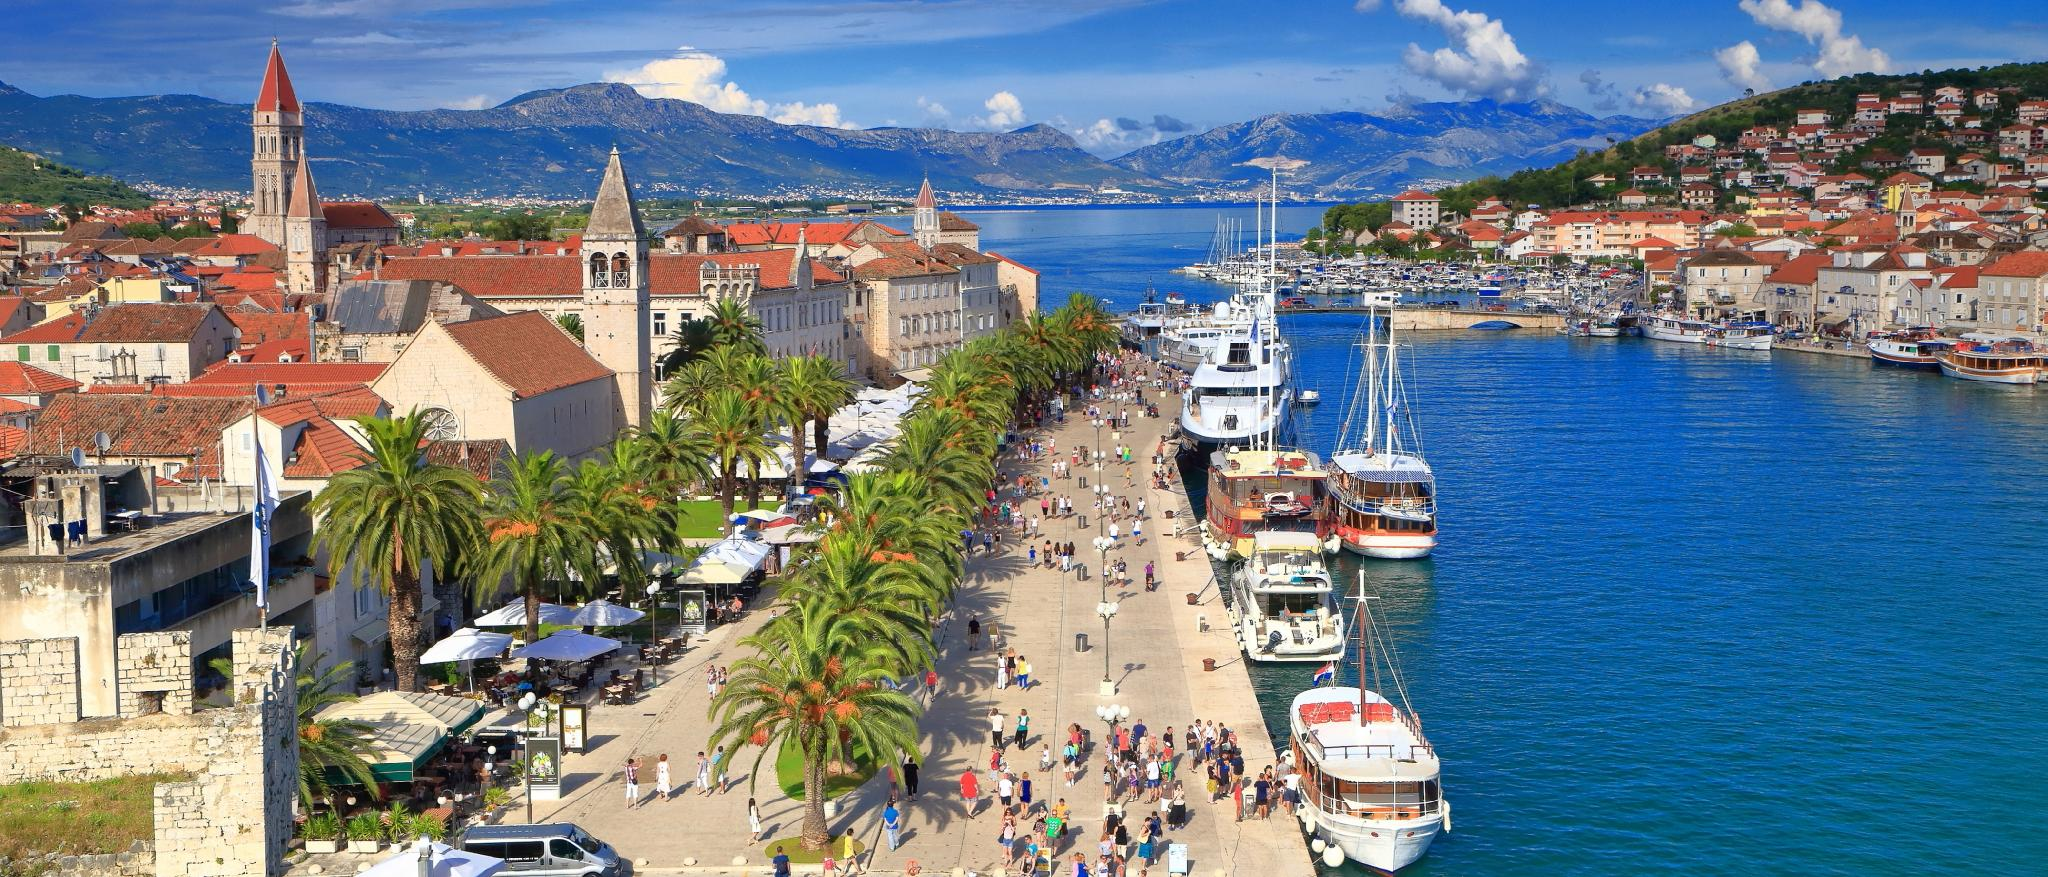 10 Best Trogir Hotels: HD Photos + Reviews of Hotels in